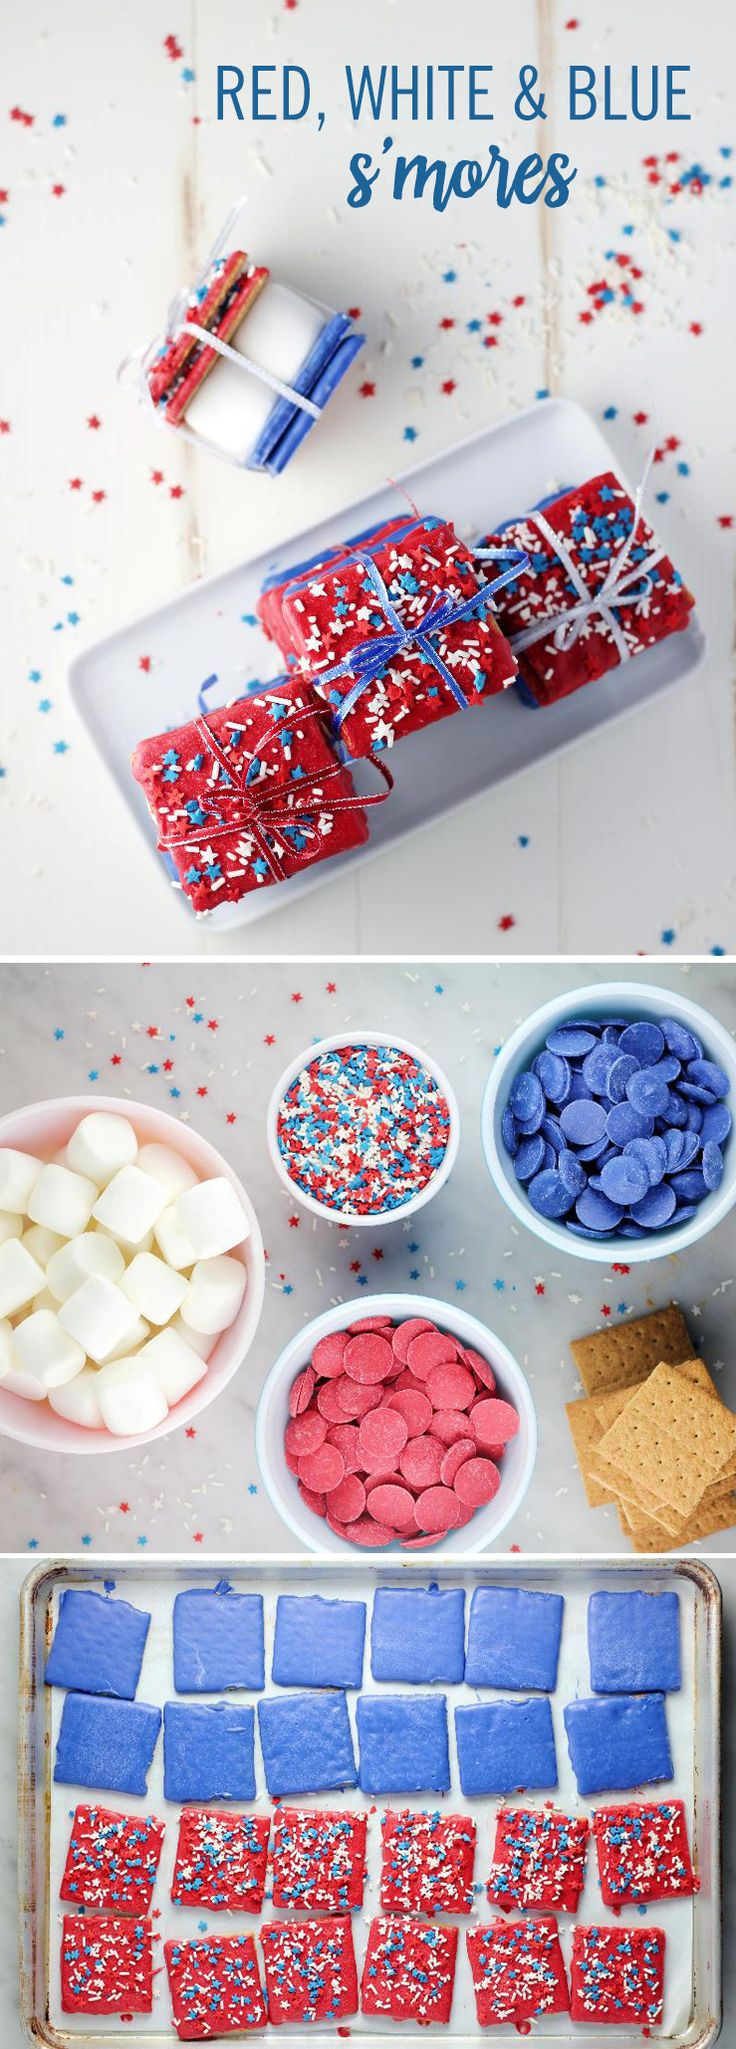 "If the ""colors"" of summer are red, white, and blue, why not extend the theme to that classic summertime treat — s'mores? All you need are five ingredients! Just dip your graham crackers in either red or blue candy melts and decorate with colored sprinkles. Tie them up and let your guests help themselves! These 4th of July S'mores will look so festive at your party!"